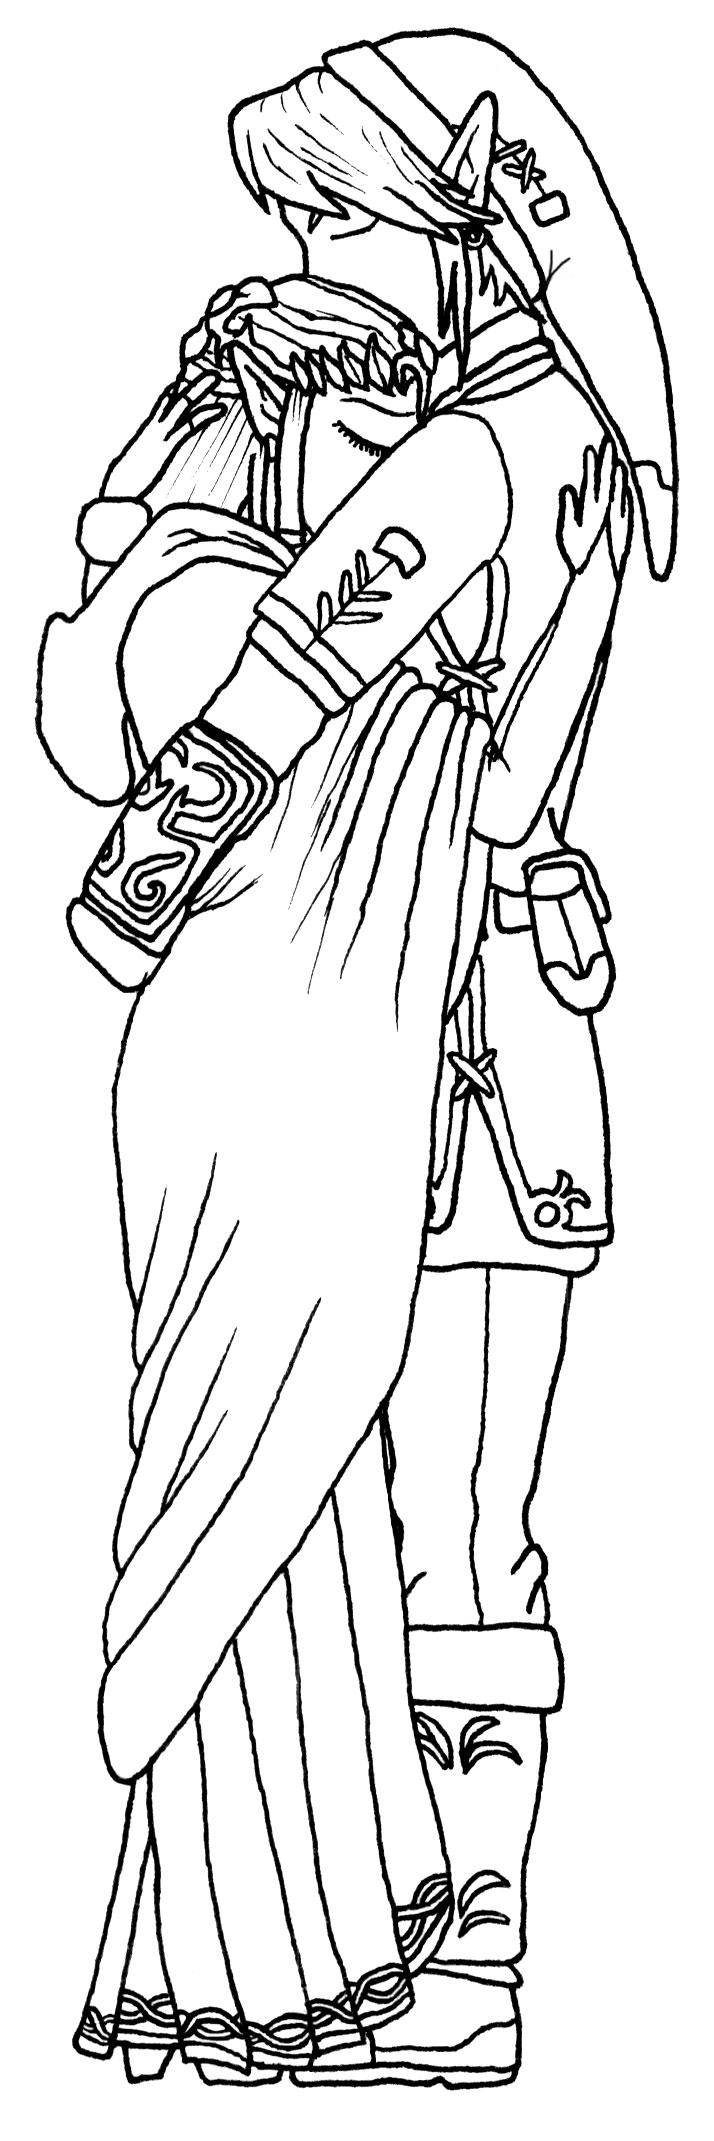 Link Coloring Pages Click On The Link To View Different Cute